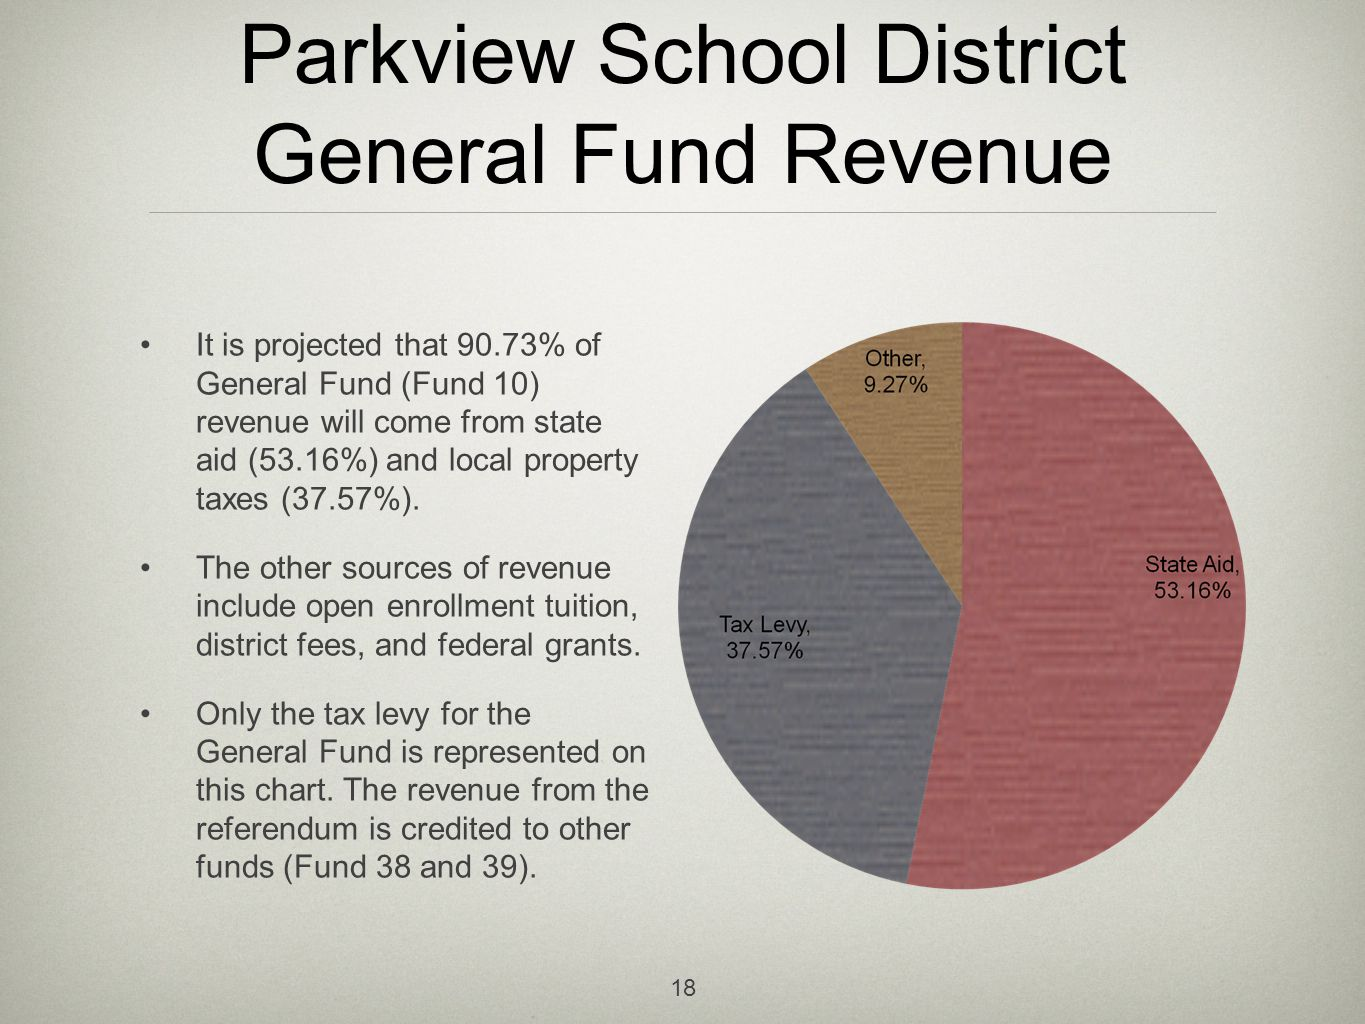 Parkview School District General Fund Revenue It is projected that 90.73% of General Fund (Fund 10) revenue will come from state aid (53.16%) and local property taxes (37.57%).